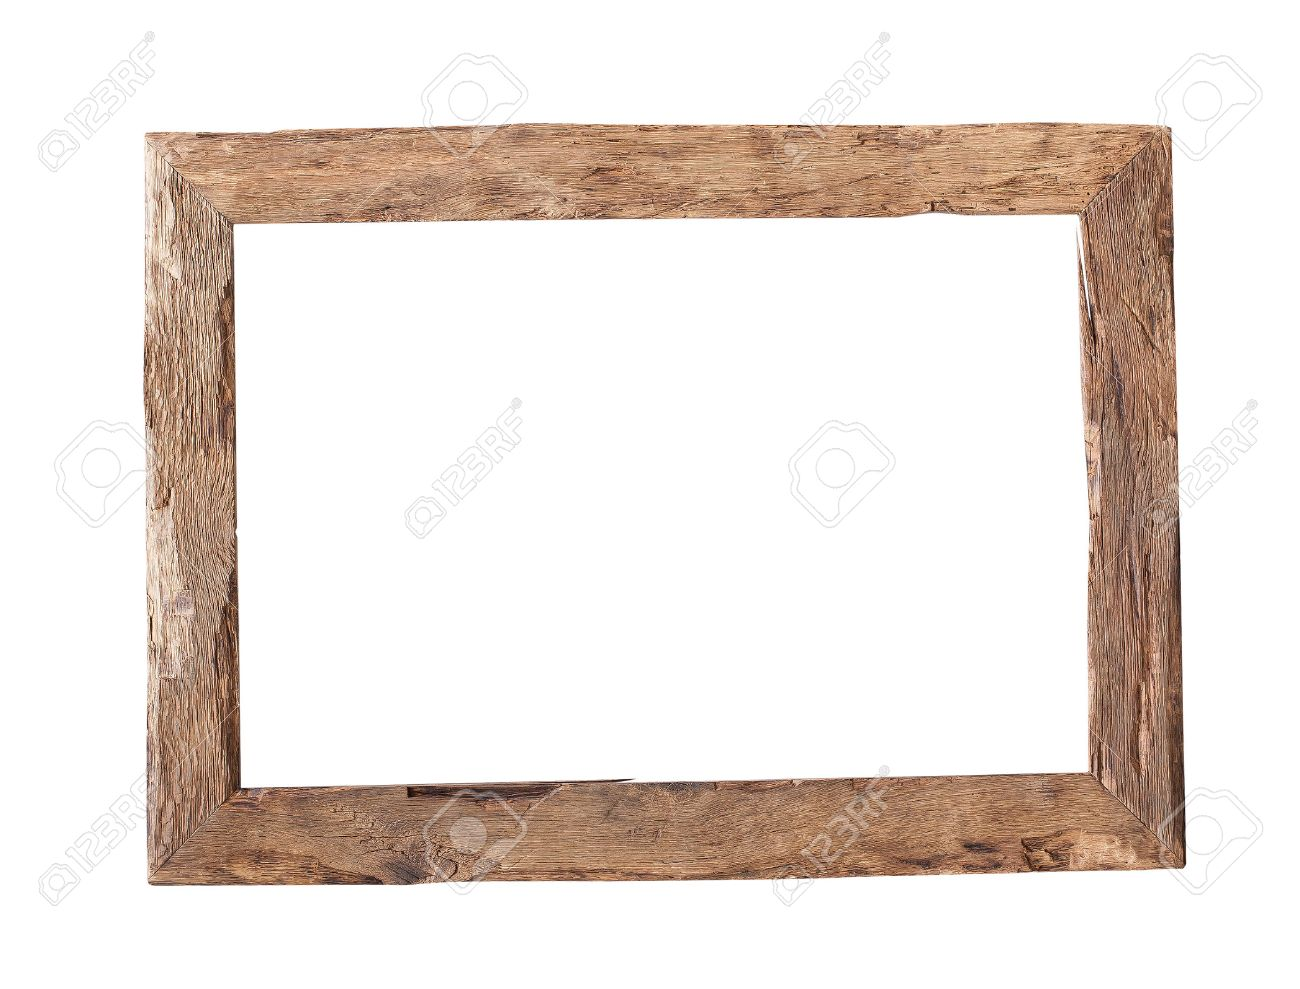 rustic wood picture frames Wooden Frame. Rustic Wood Frame Isolated On The White Background  rustic wood picture frames